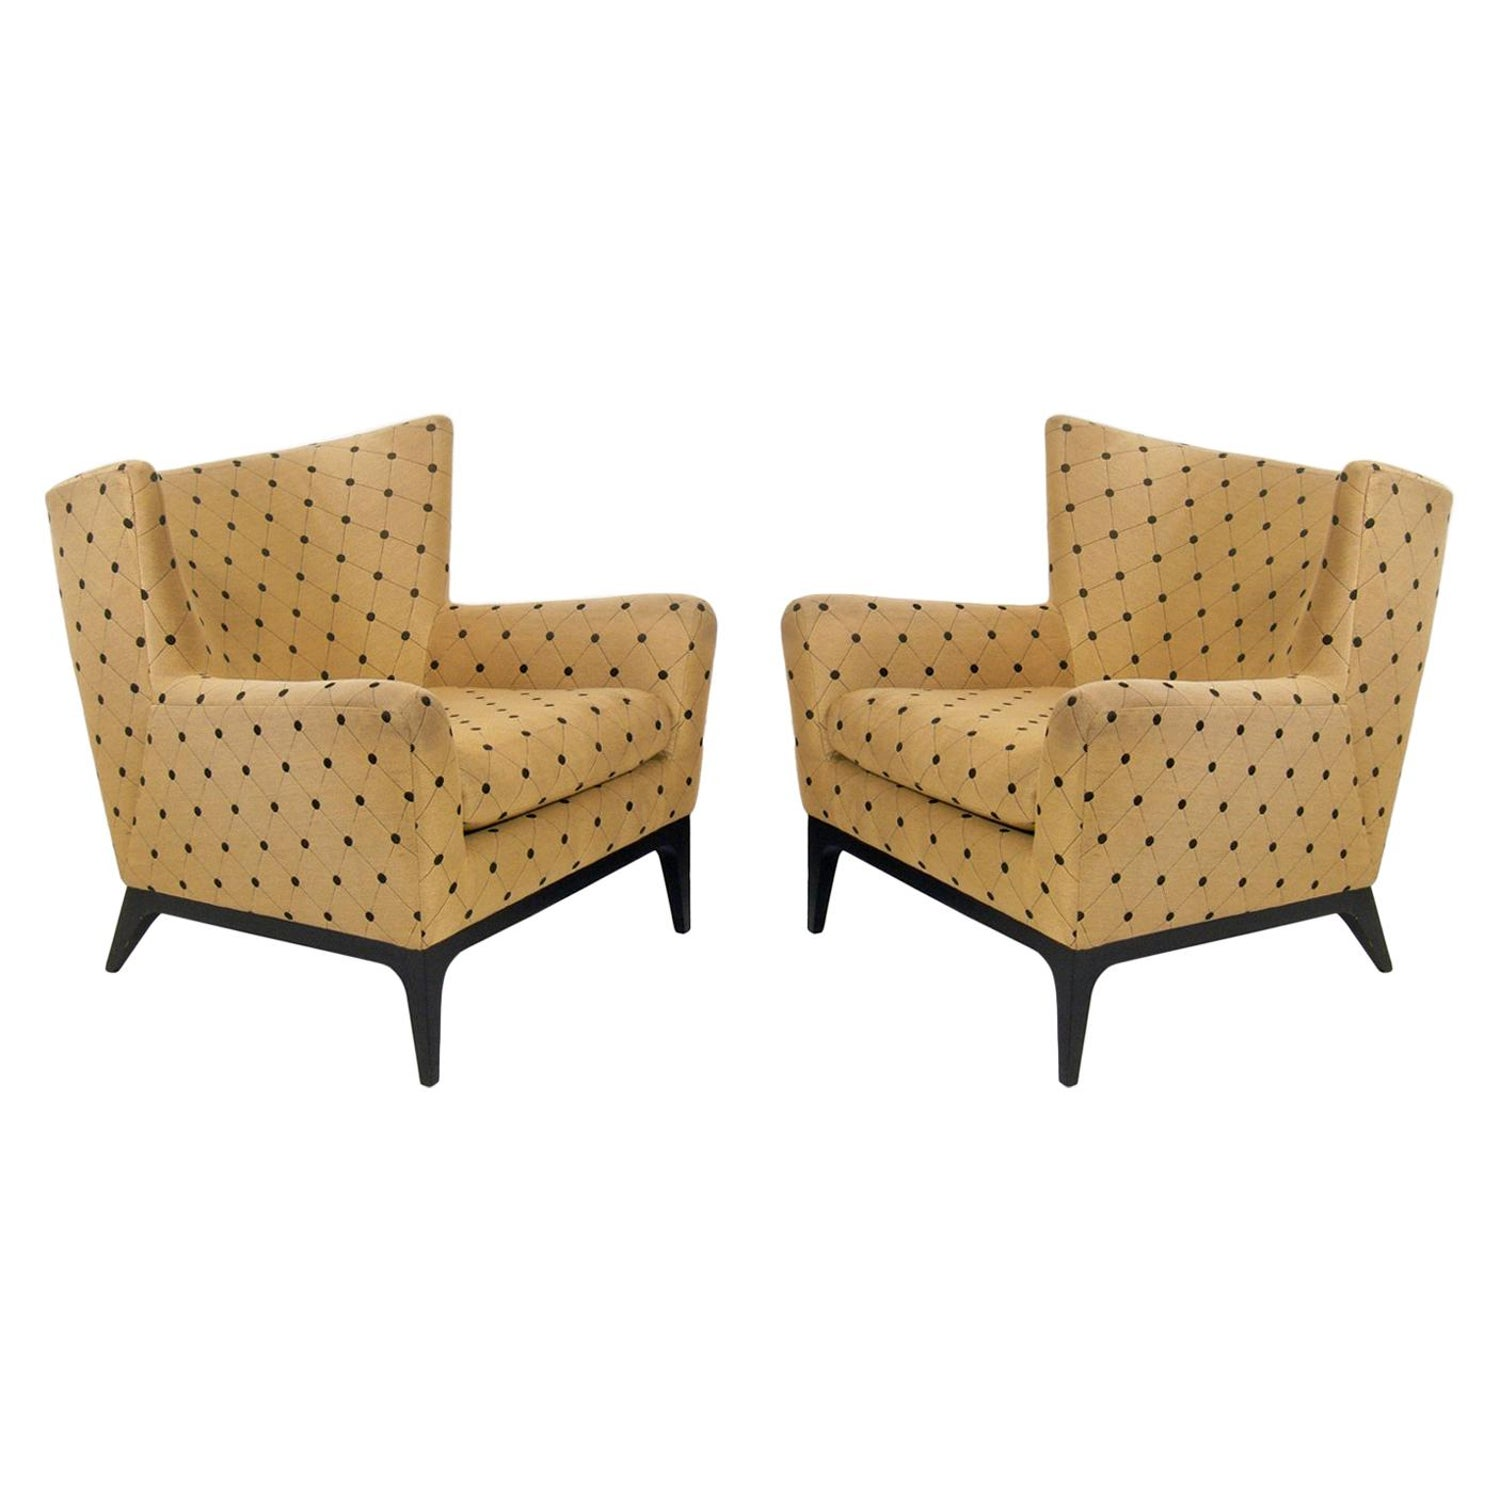 Pair of curvaceous modern lounge chairs for sale at 1stdibs